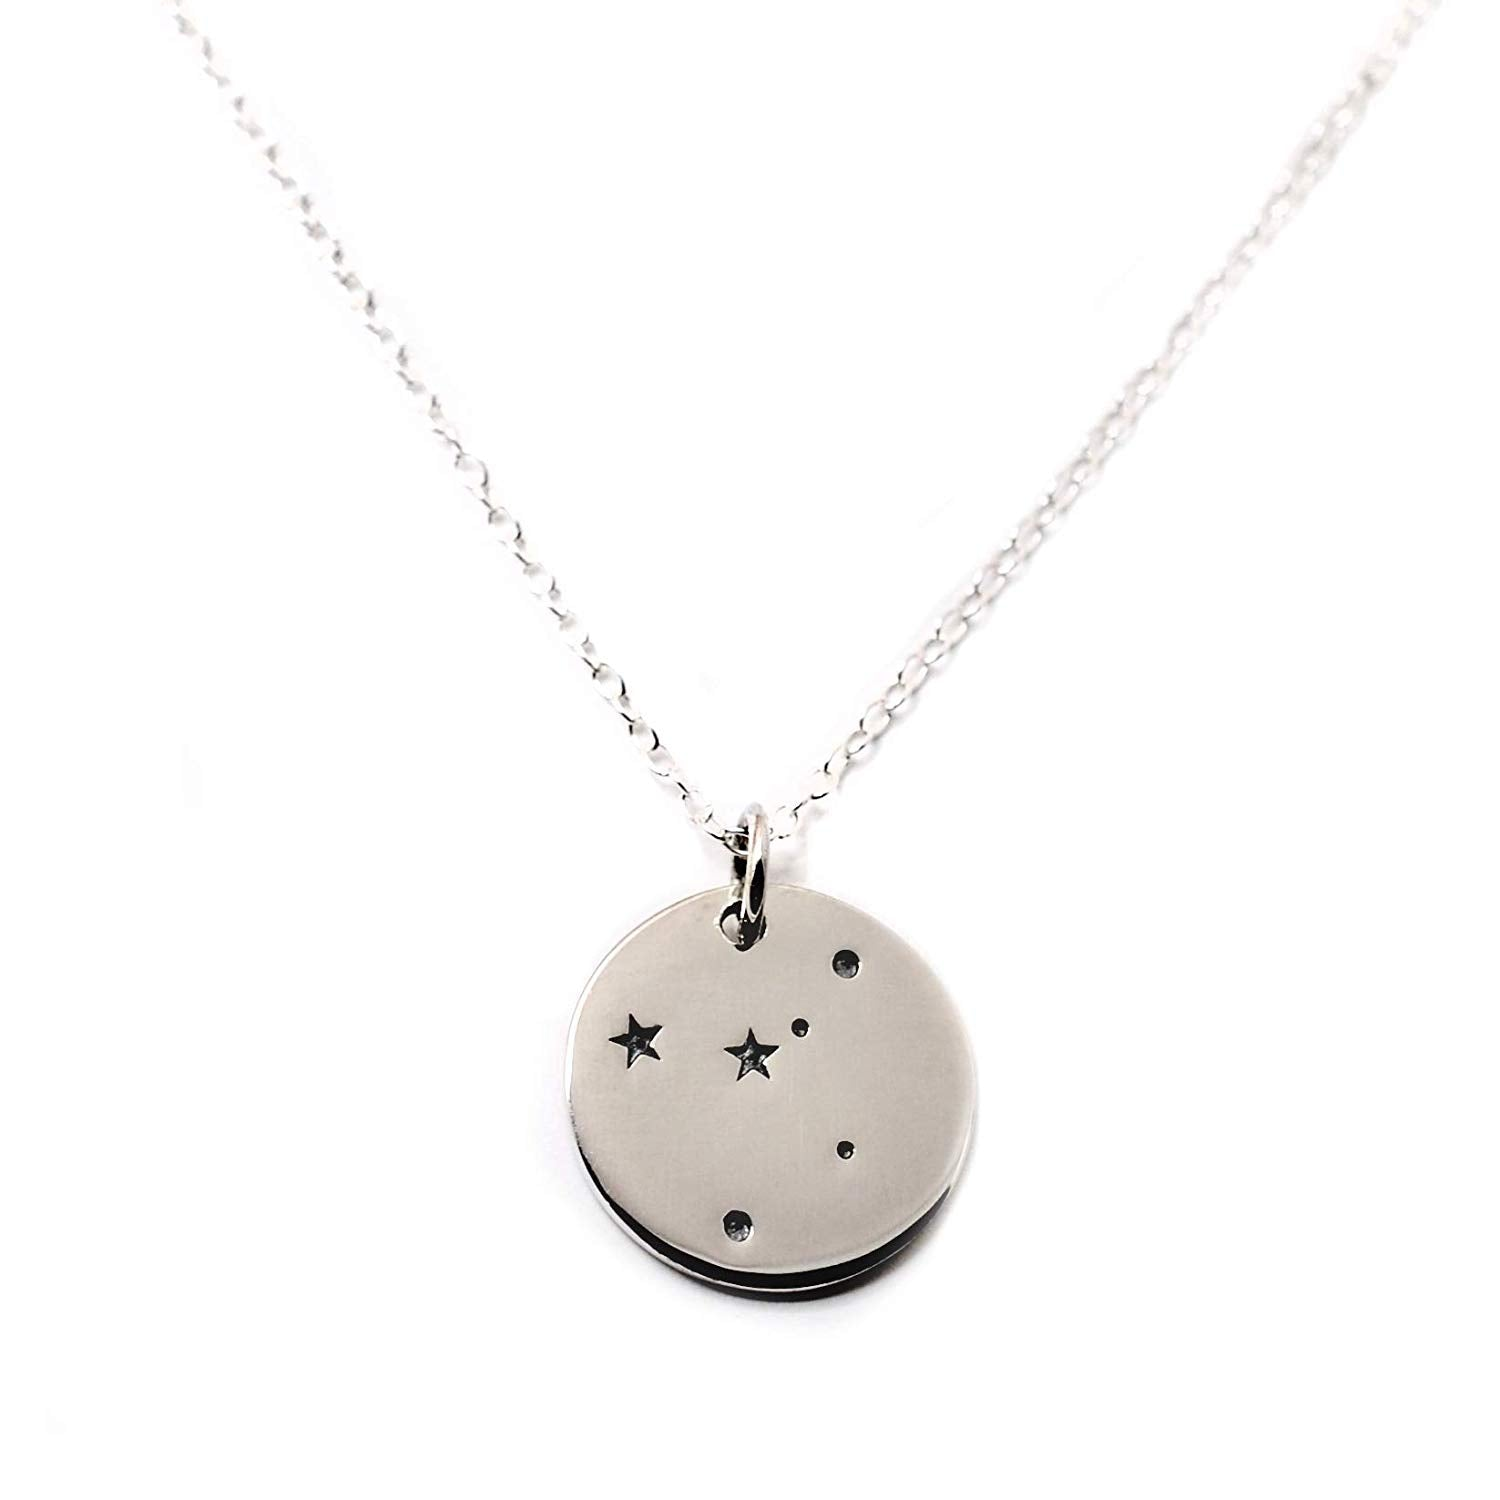 Cancer Zodiac Sign Sterling Silver Constellation Necklace - Love It Personalized